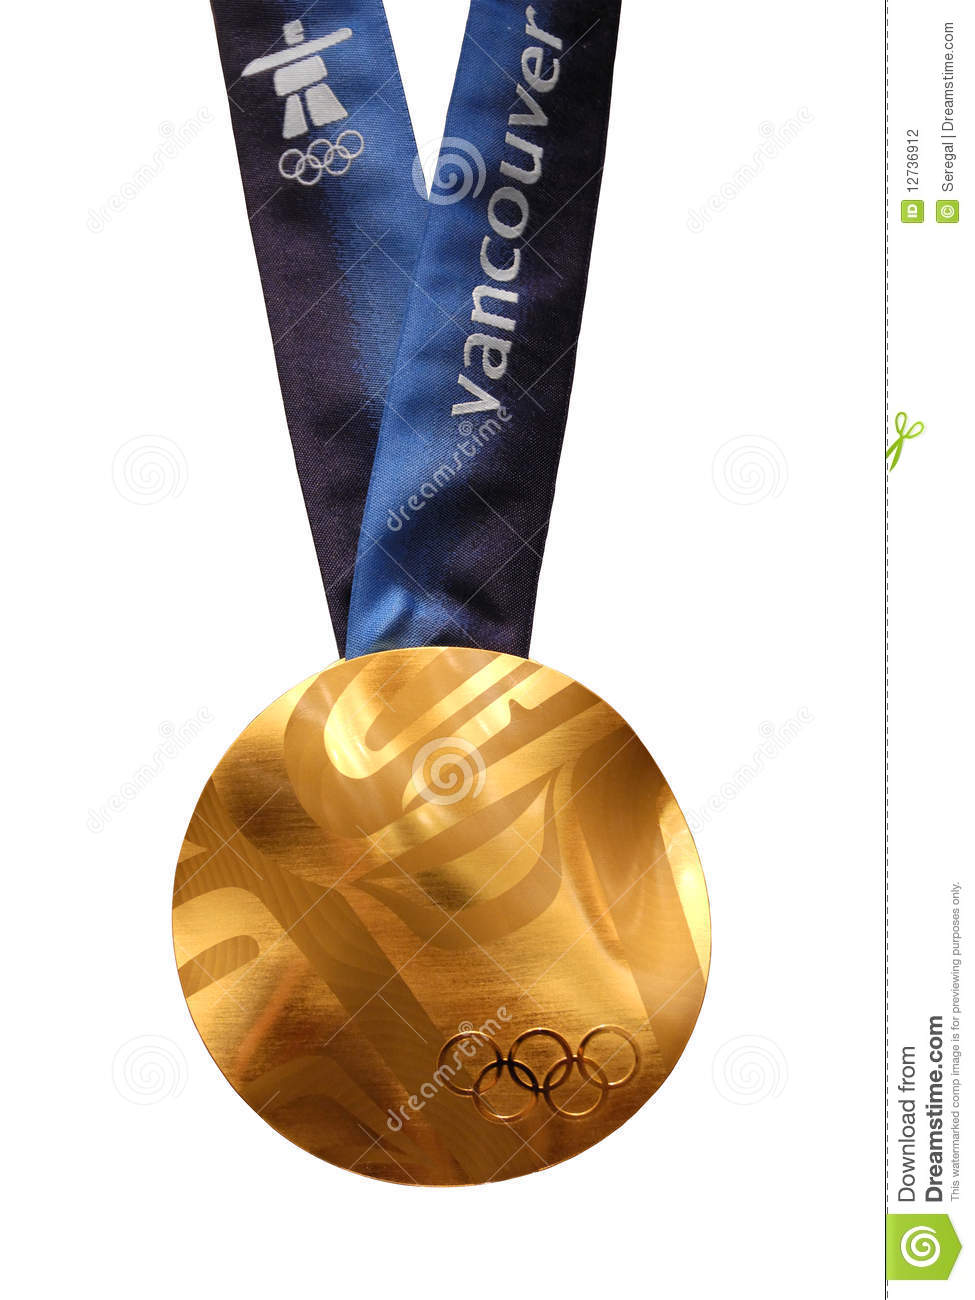 gold medal travel group: